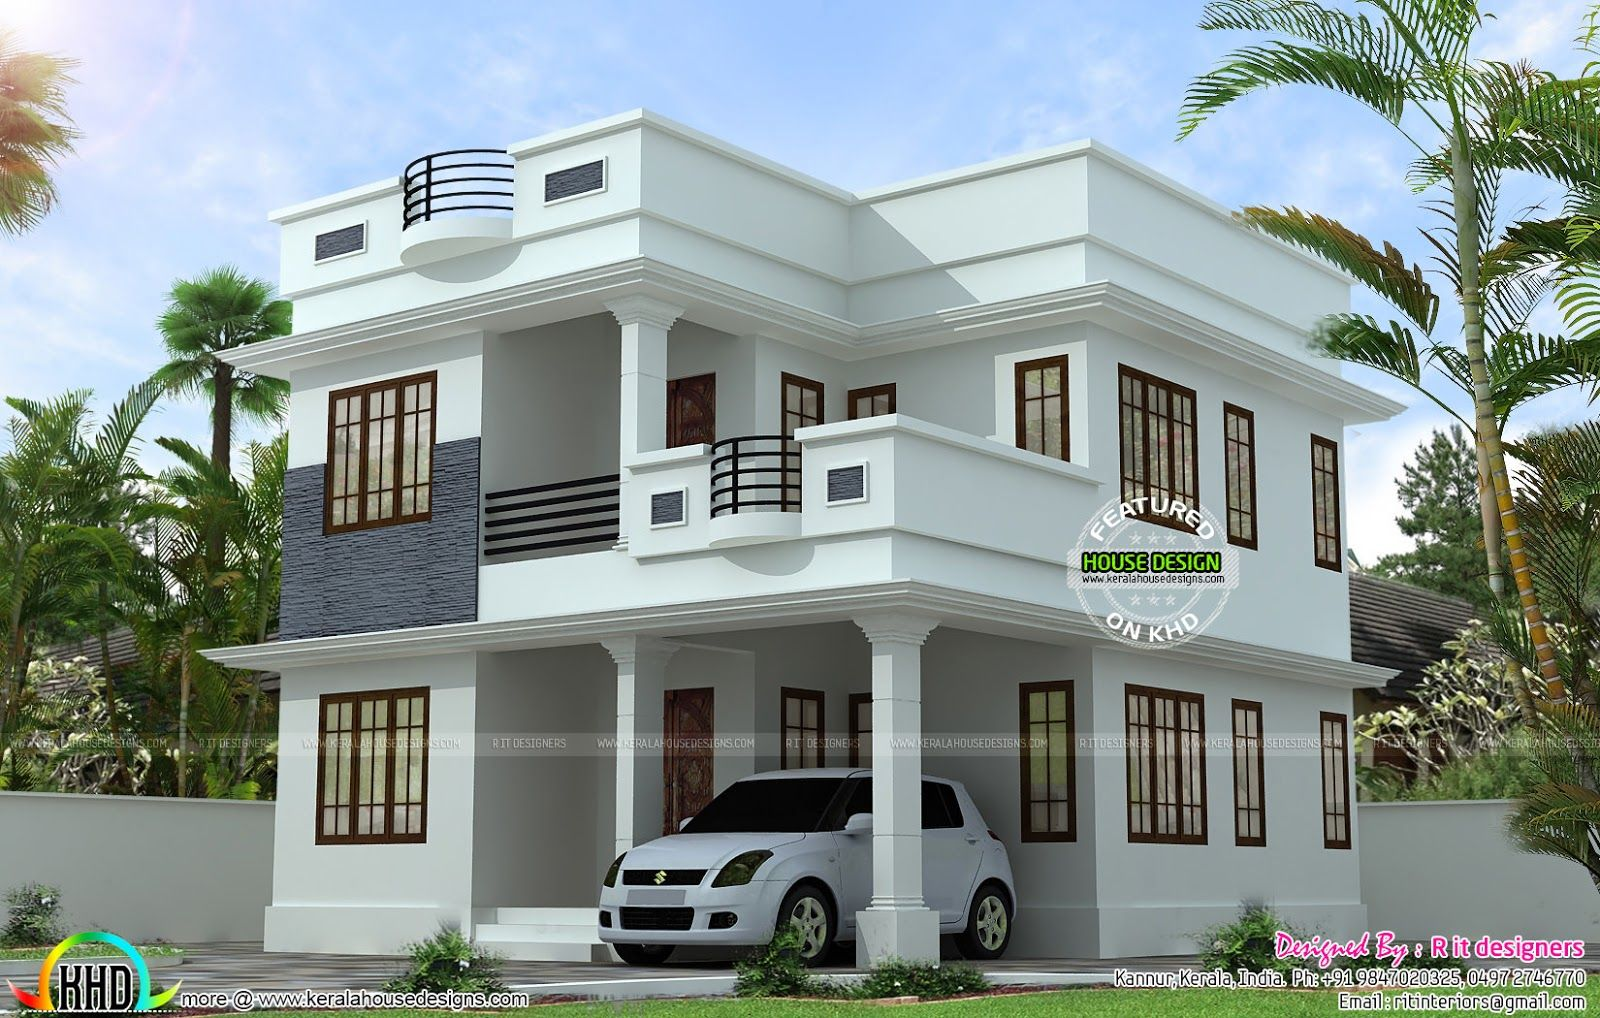 Home design  amp decor house front simple bungalow designs also pradeepkumar pradheepkumar on pinterest rh